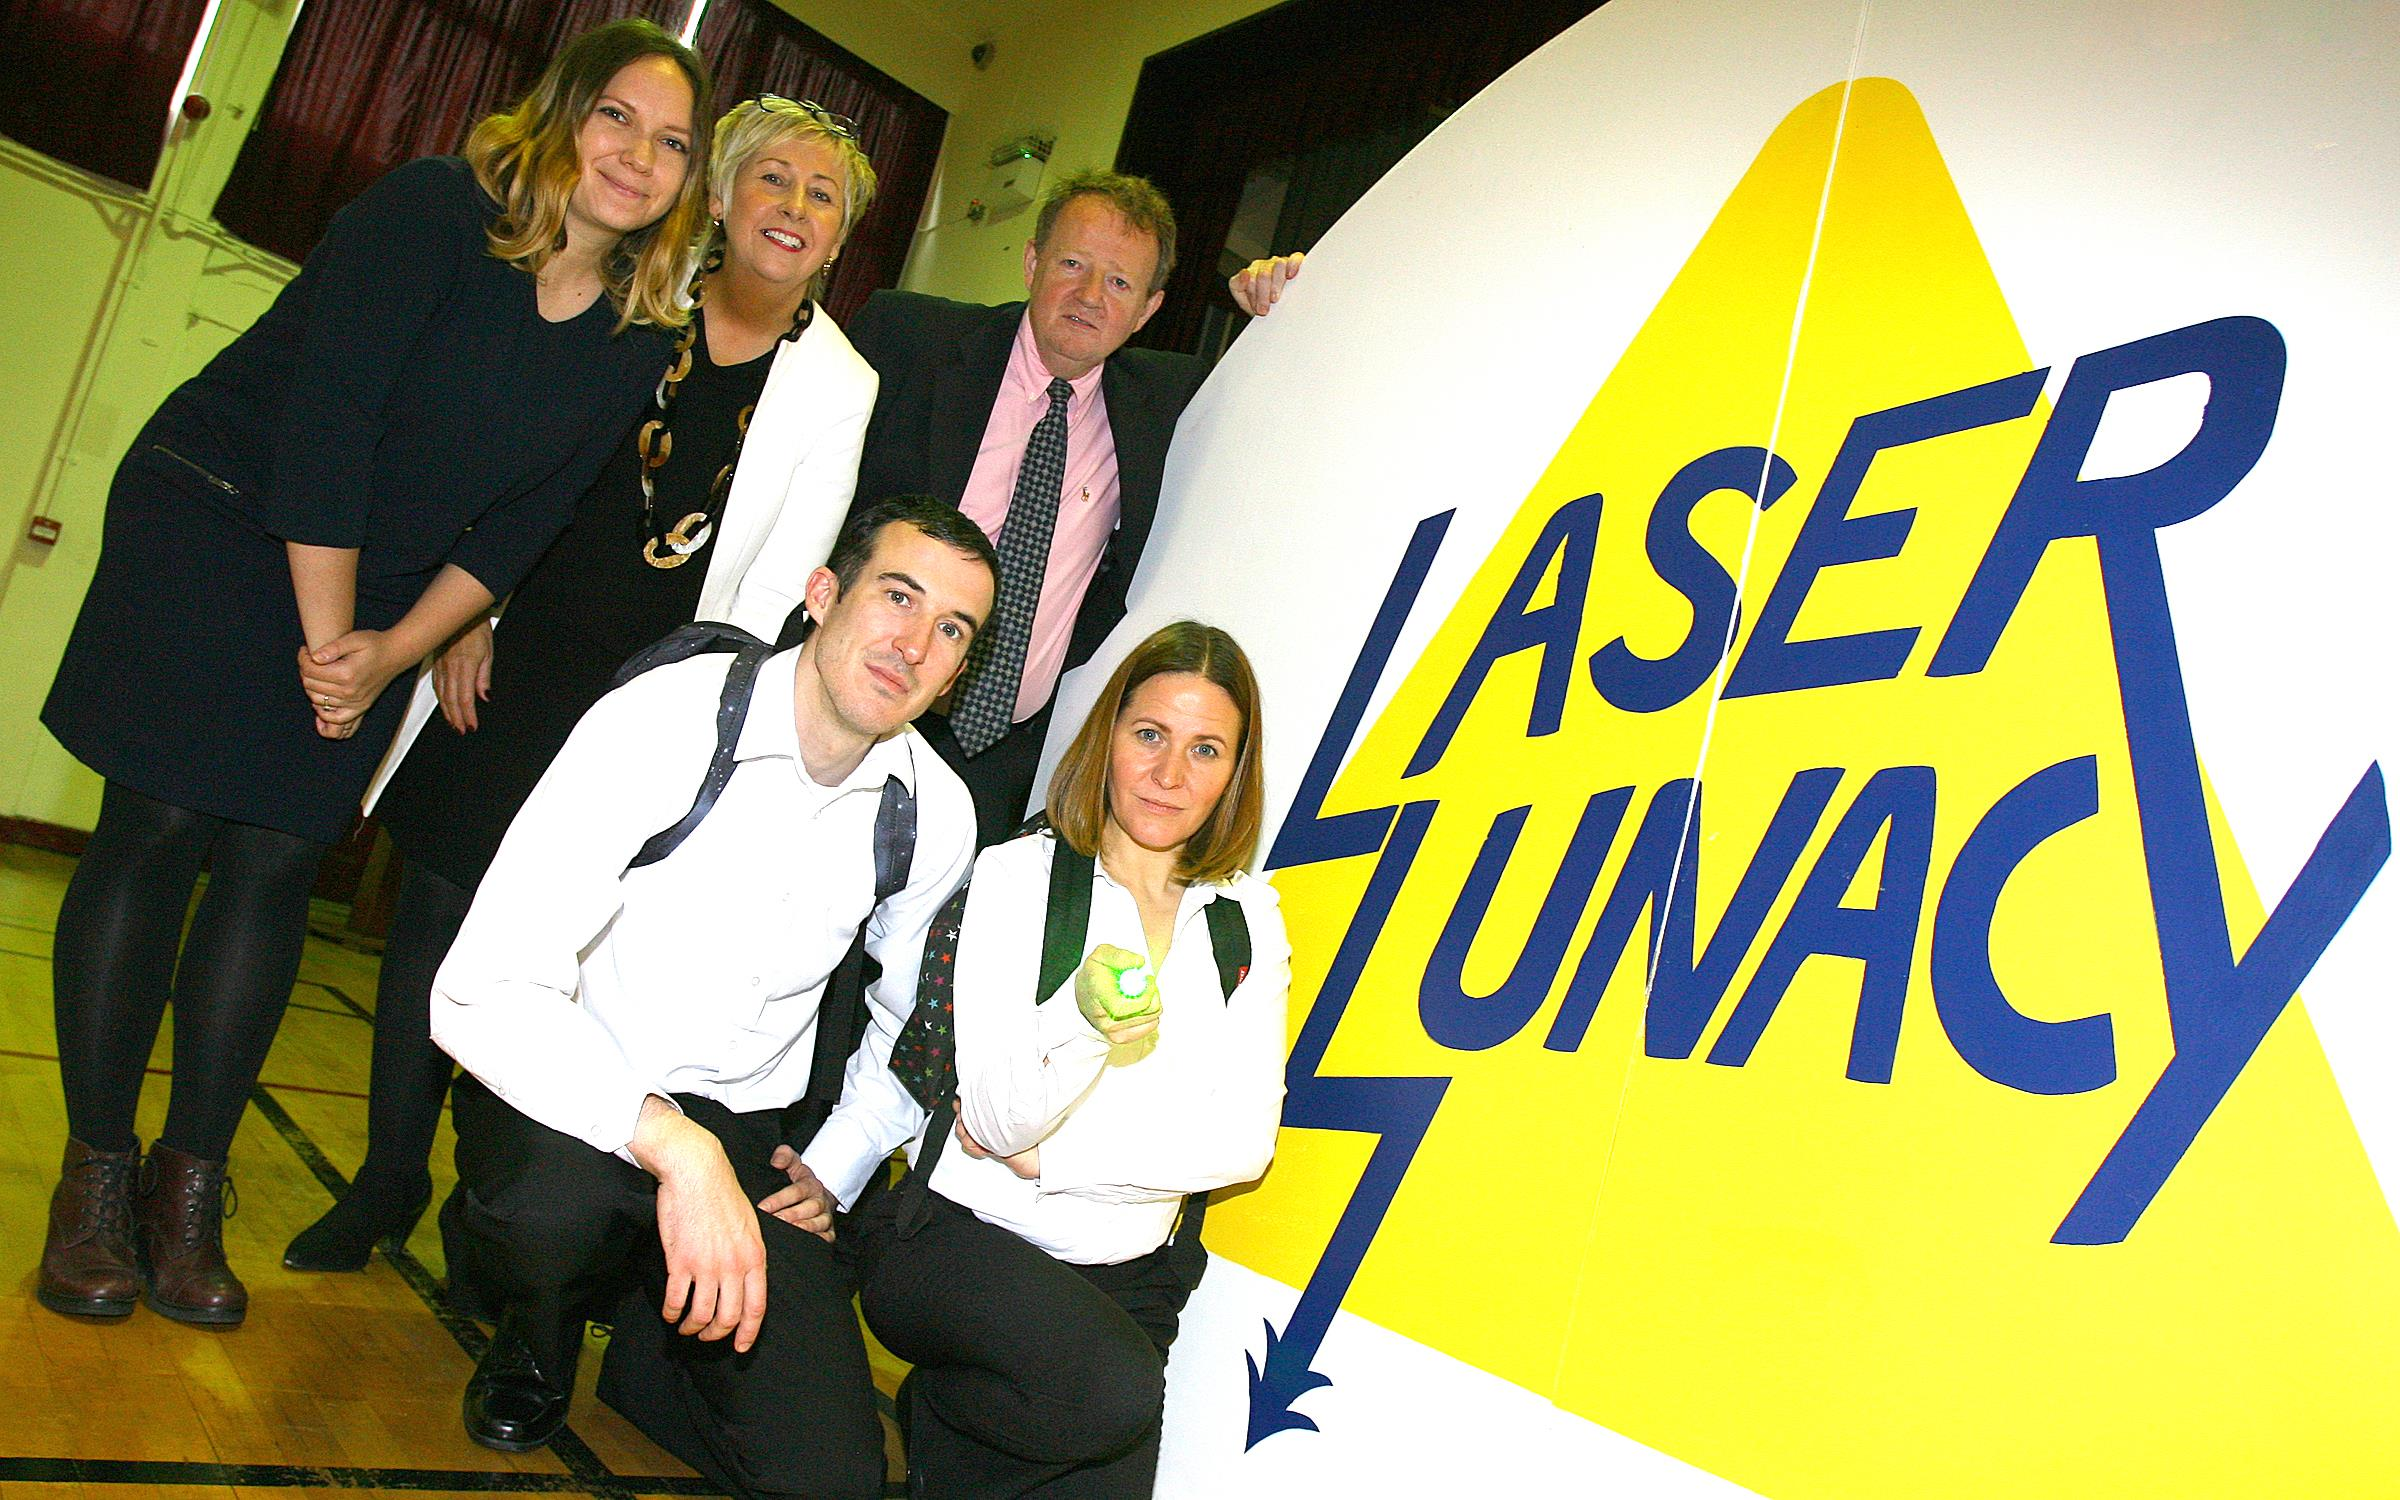 'Laser Lunacy' gets thumbs up from secondary schools